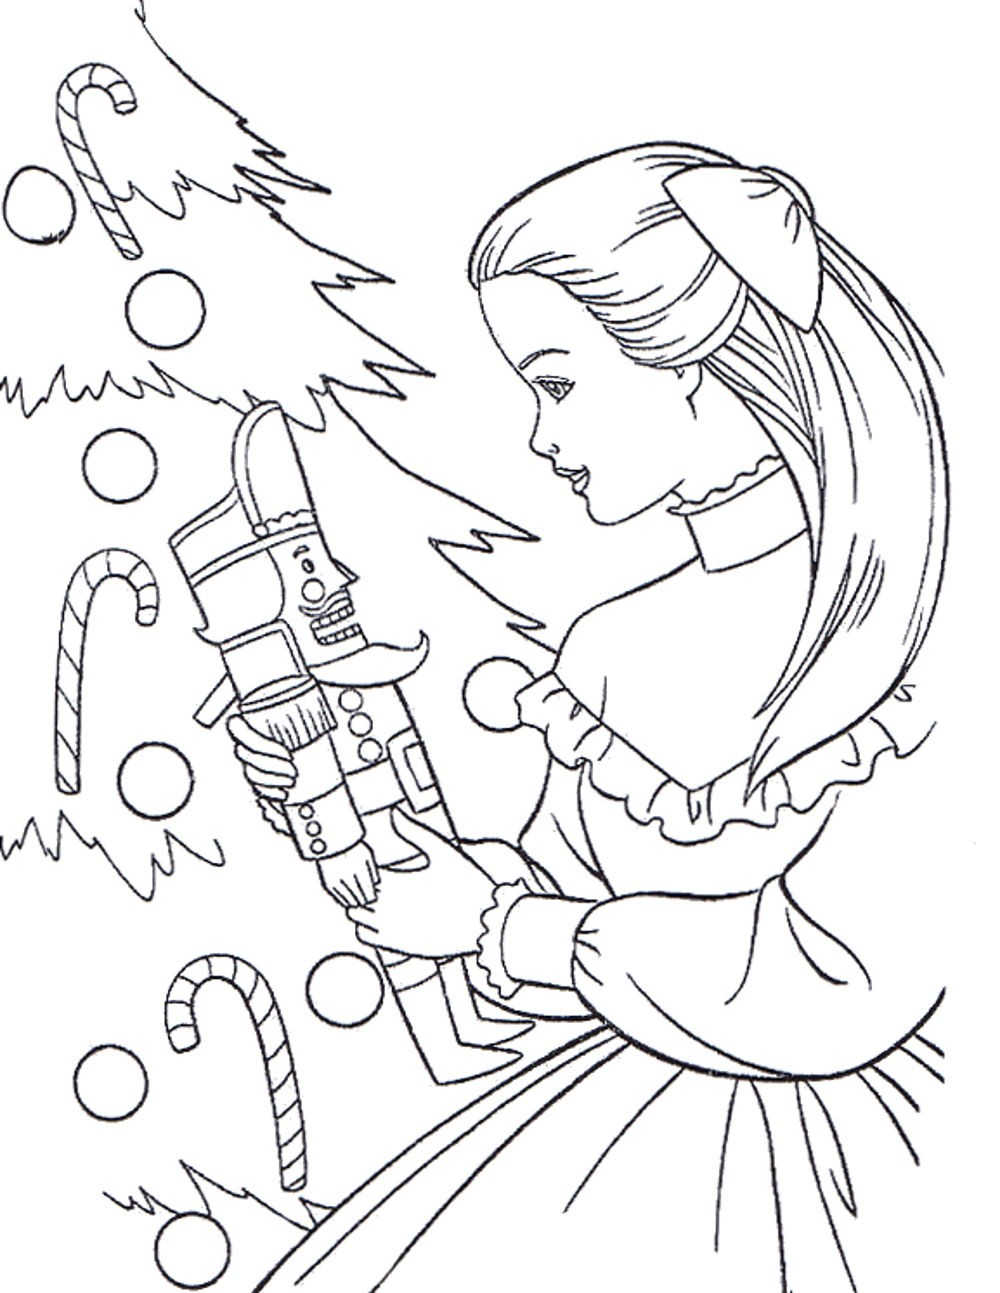 barbie-christmas-coloring-pages | | BestAppsForKids.com